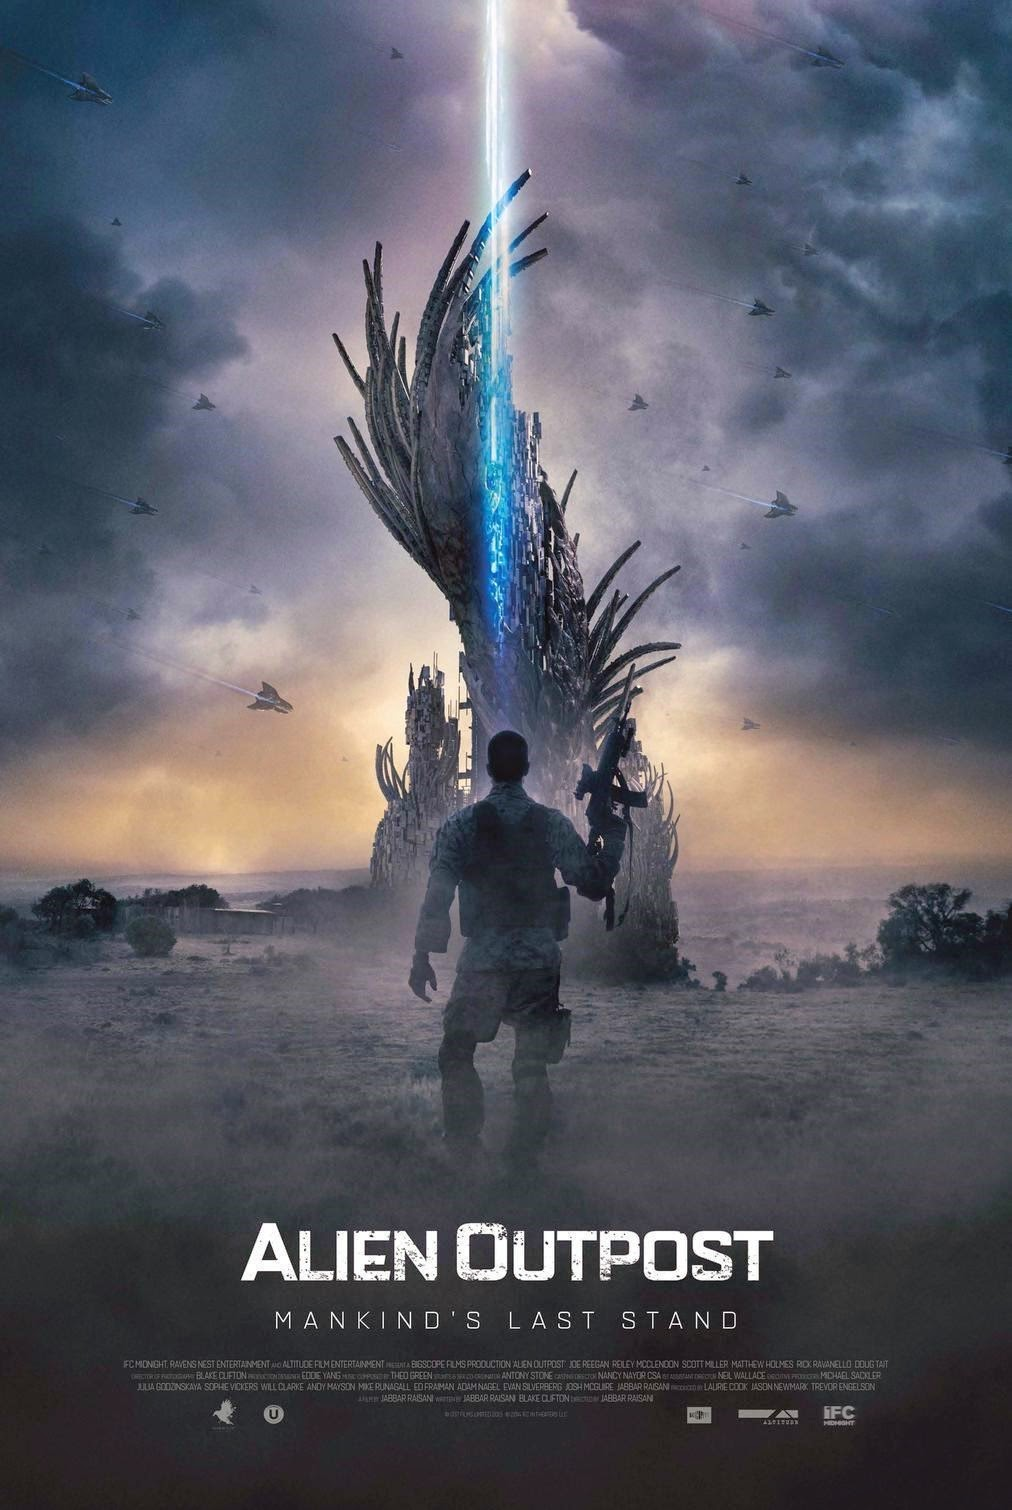 Alien Outpost 2014 – Watch Movie and TV Show PubFilm HD Free